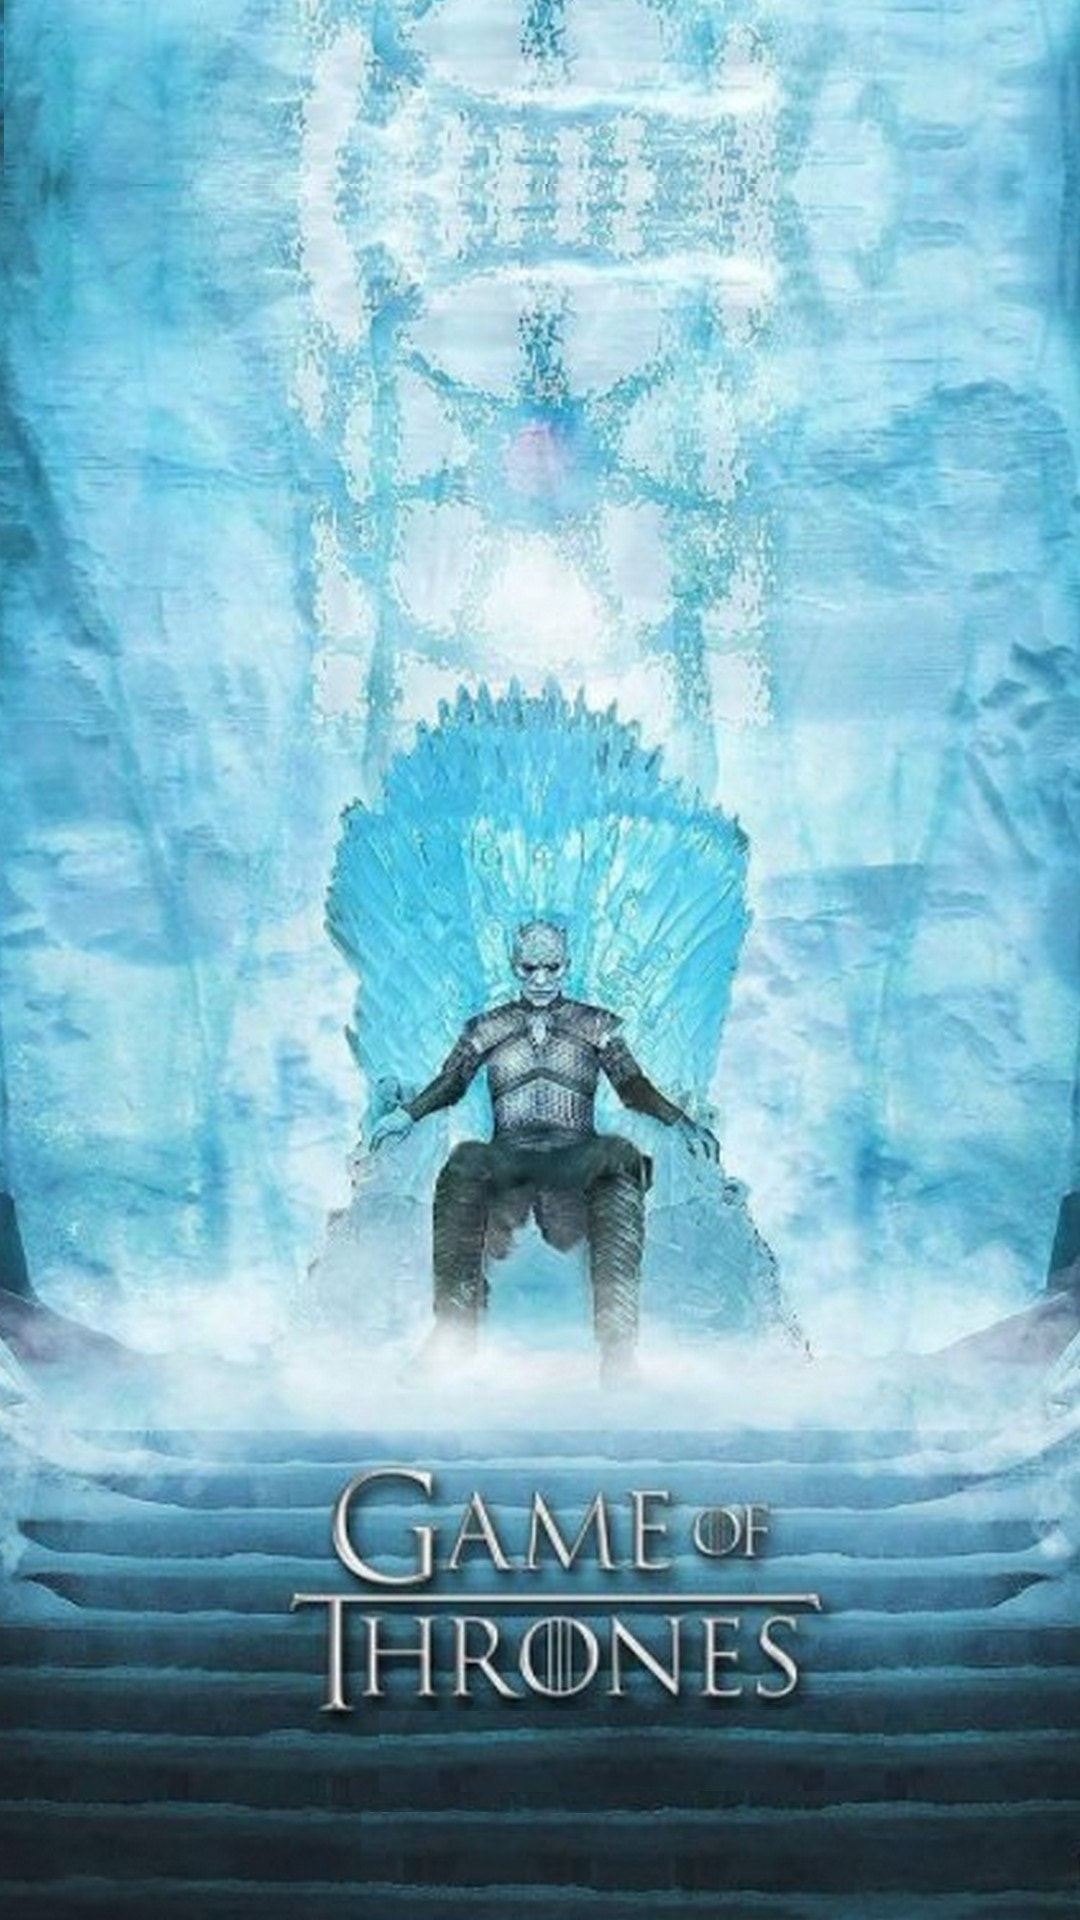 Night King Game Of Thrones Poster - HD Wallpaper